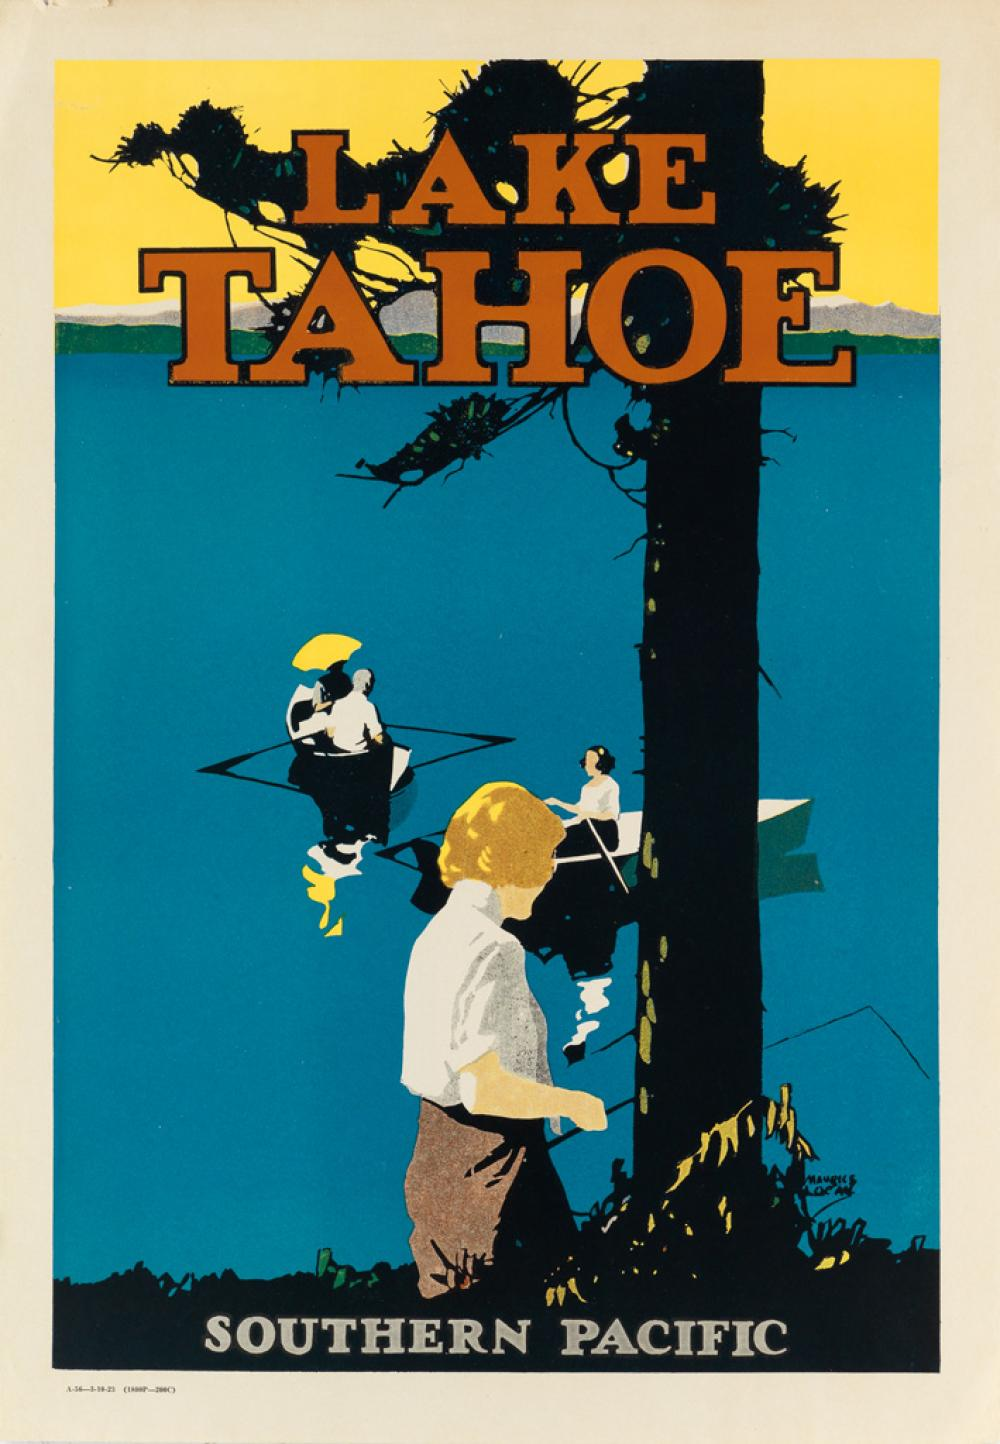 MAURICE LOGAN (1886-1977). LAKE TAHOE / SOUTHERN PACIFIC. 1923. 22x16 inches, 57x40 cm.